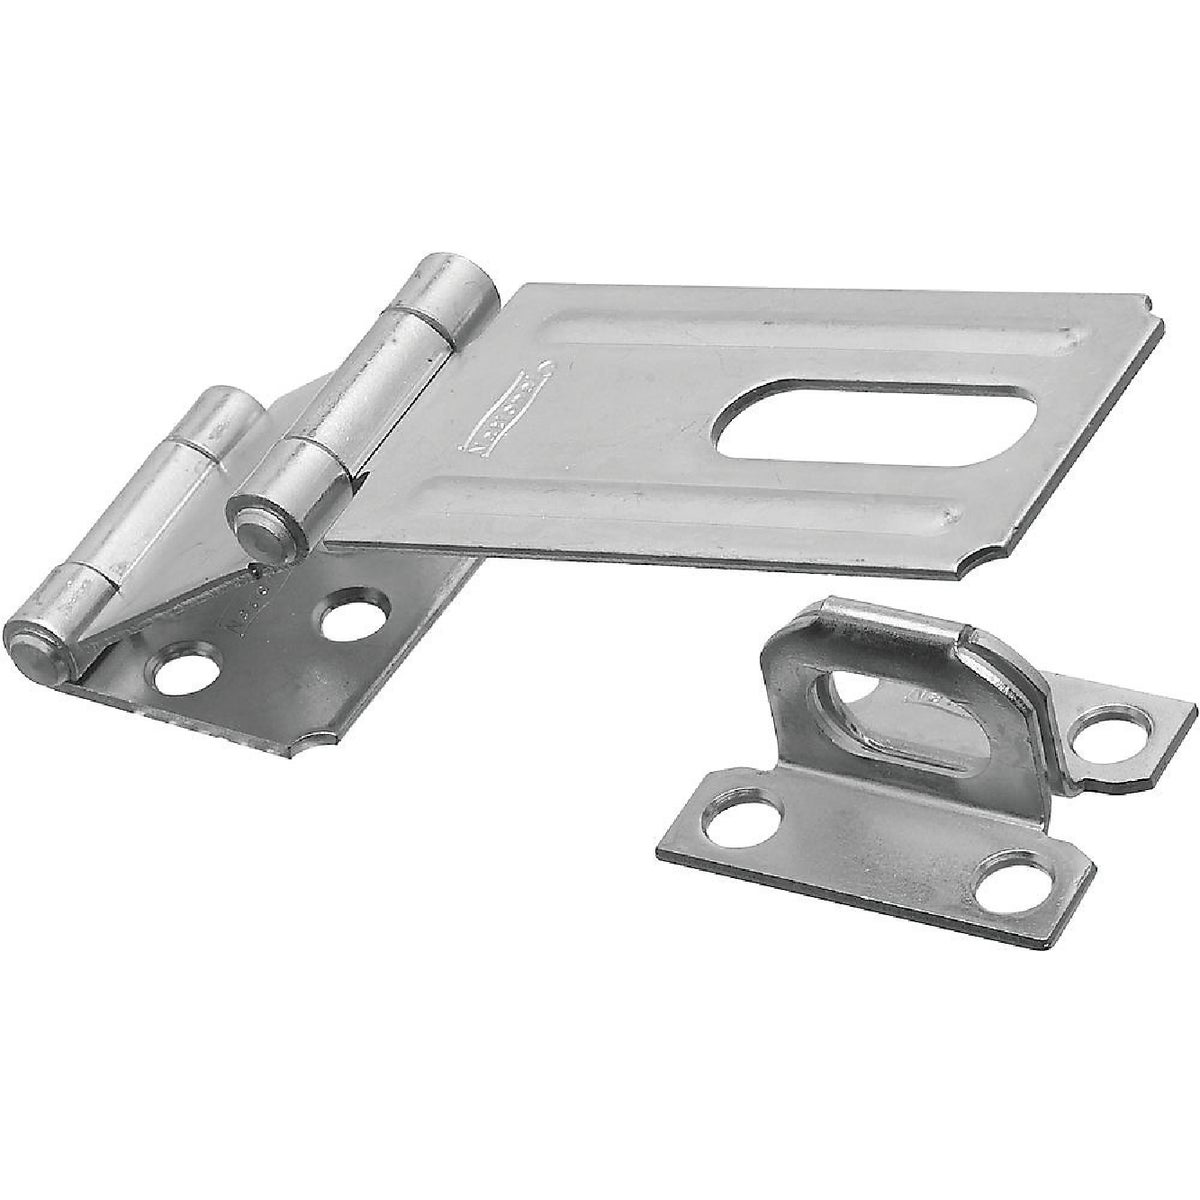 "3-1/4"" DOUBLE HINGE HASP"